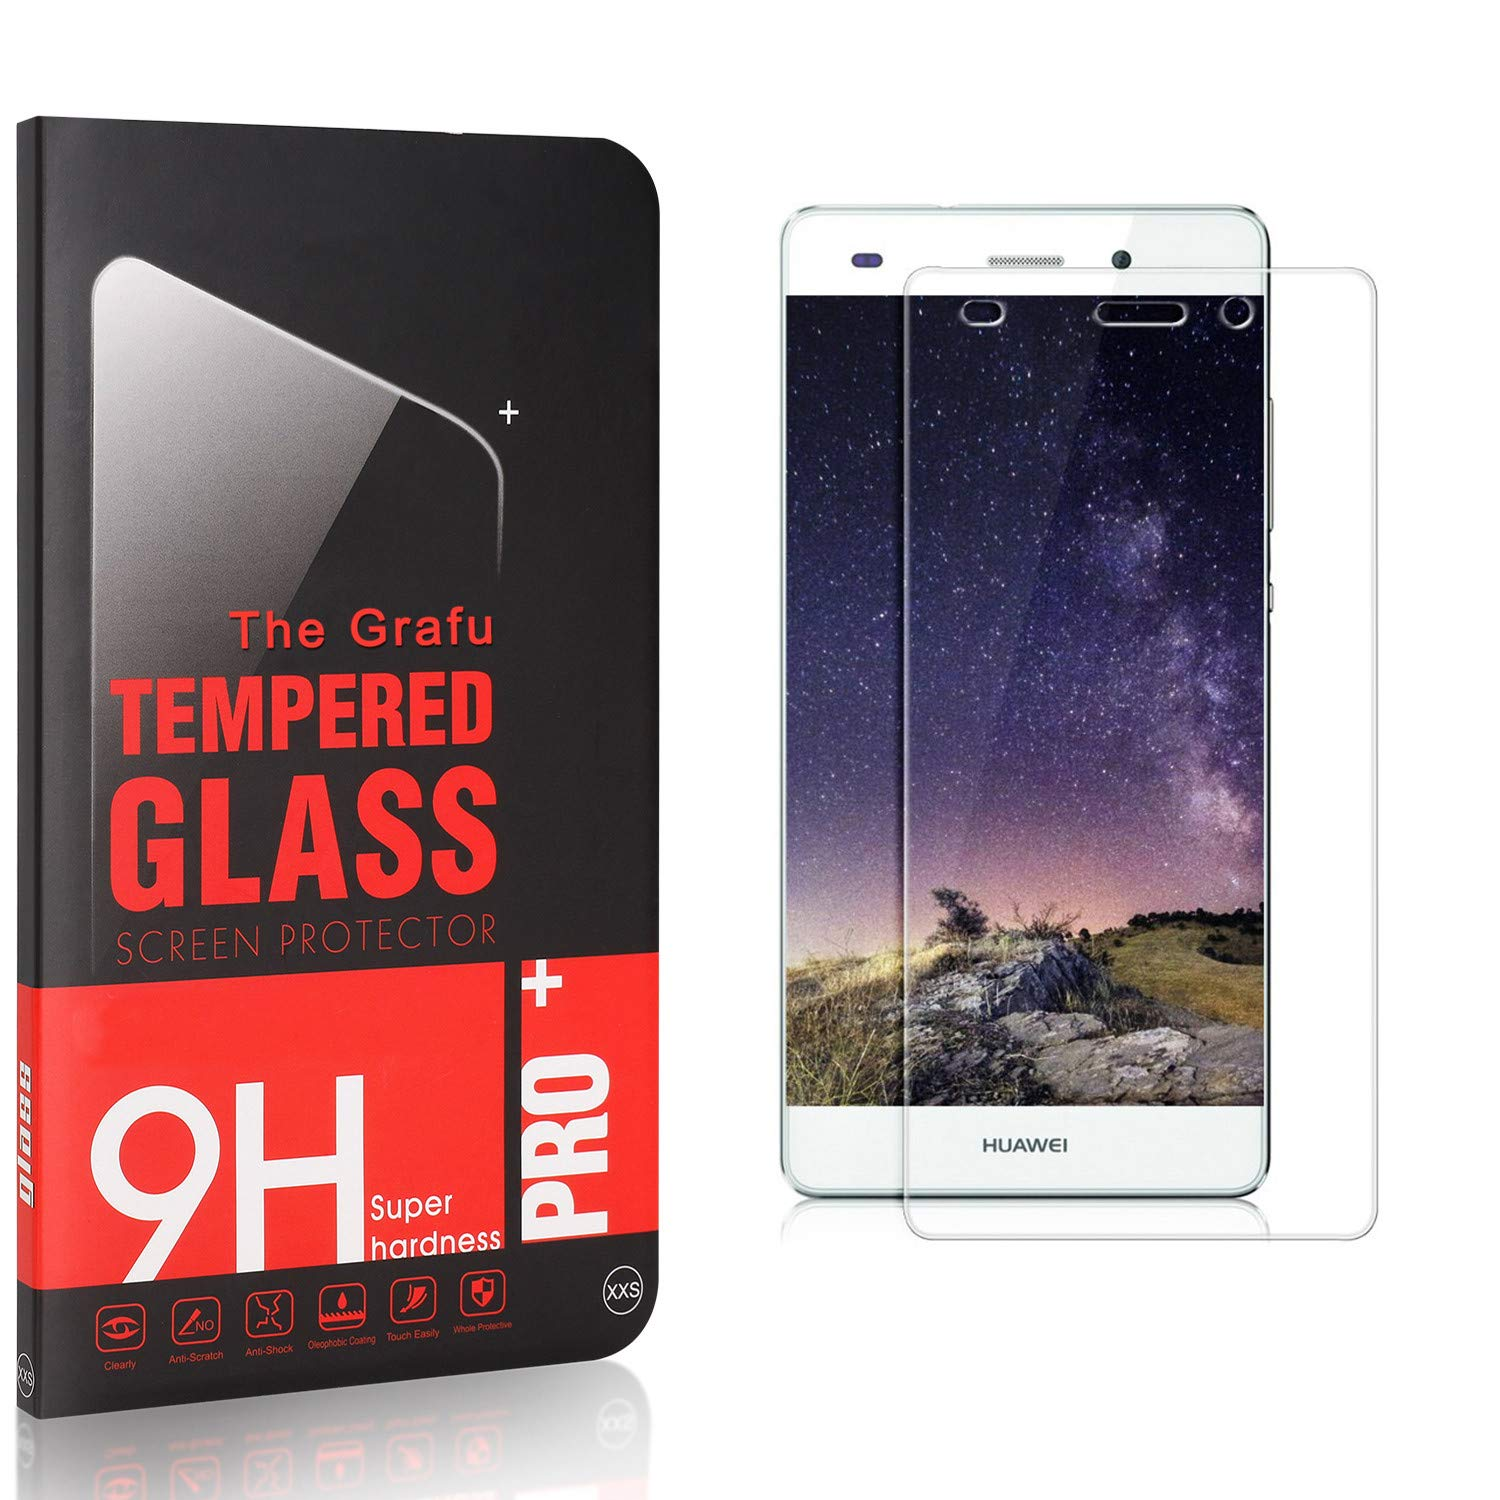 The Grafu Screen Protector for Huawei P8 3 Pack Ultra Clear 9H Tempered Glass Screen Protector Compatible with Huawei P8 Easy Installation